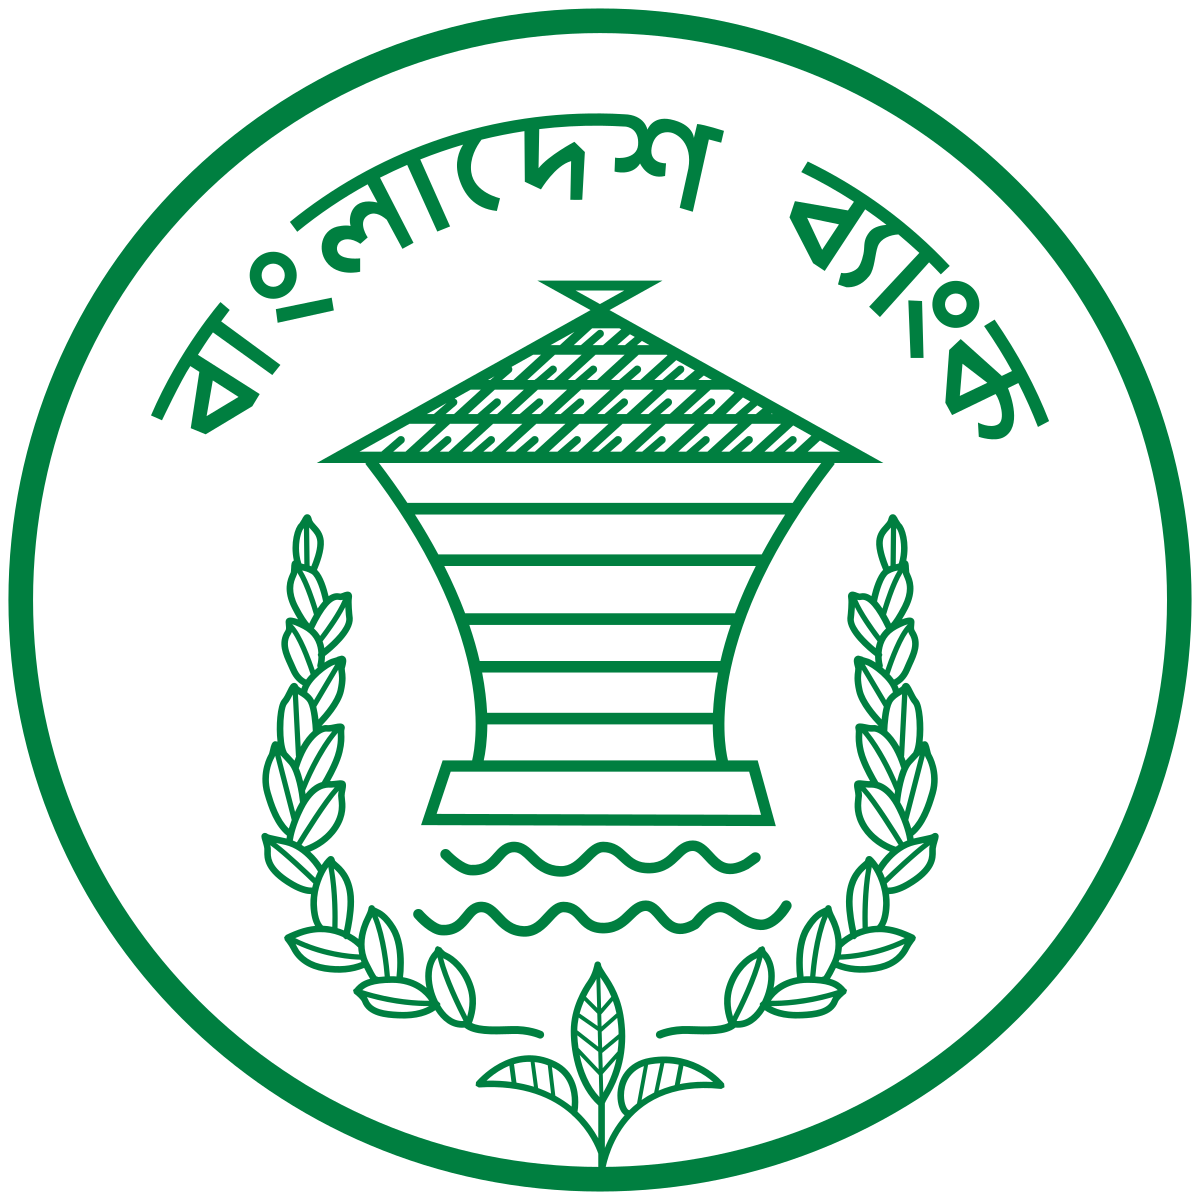 Bangladesh Bank Officer General 2019 Recruitment Result